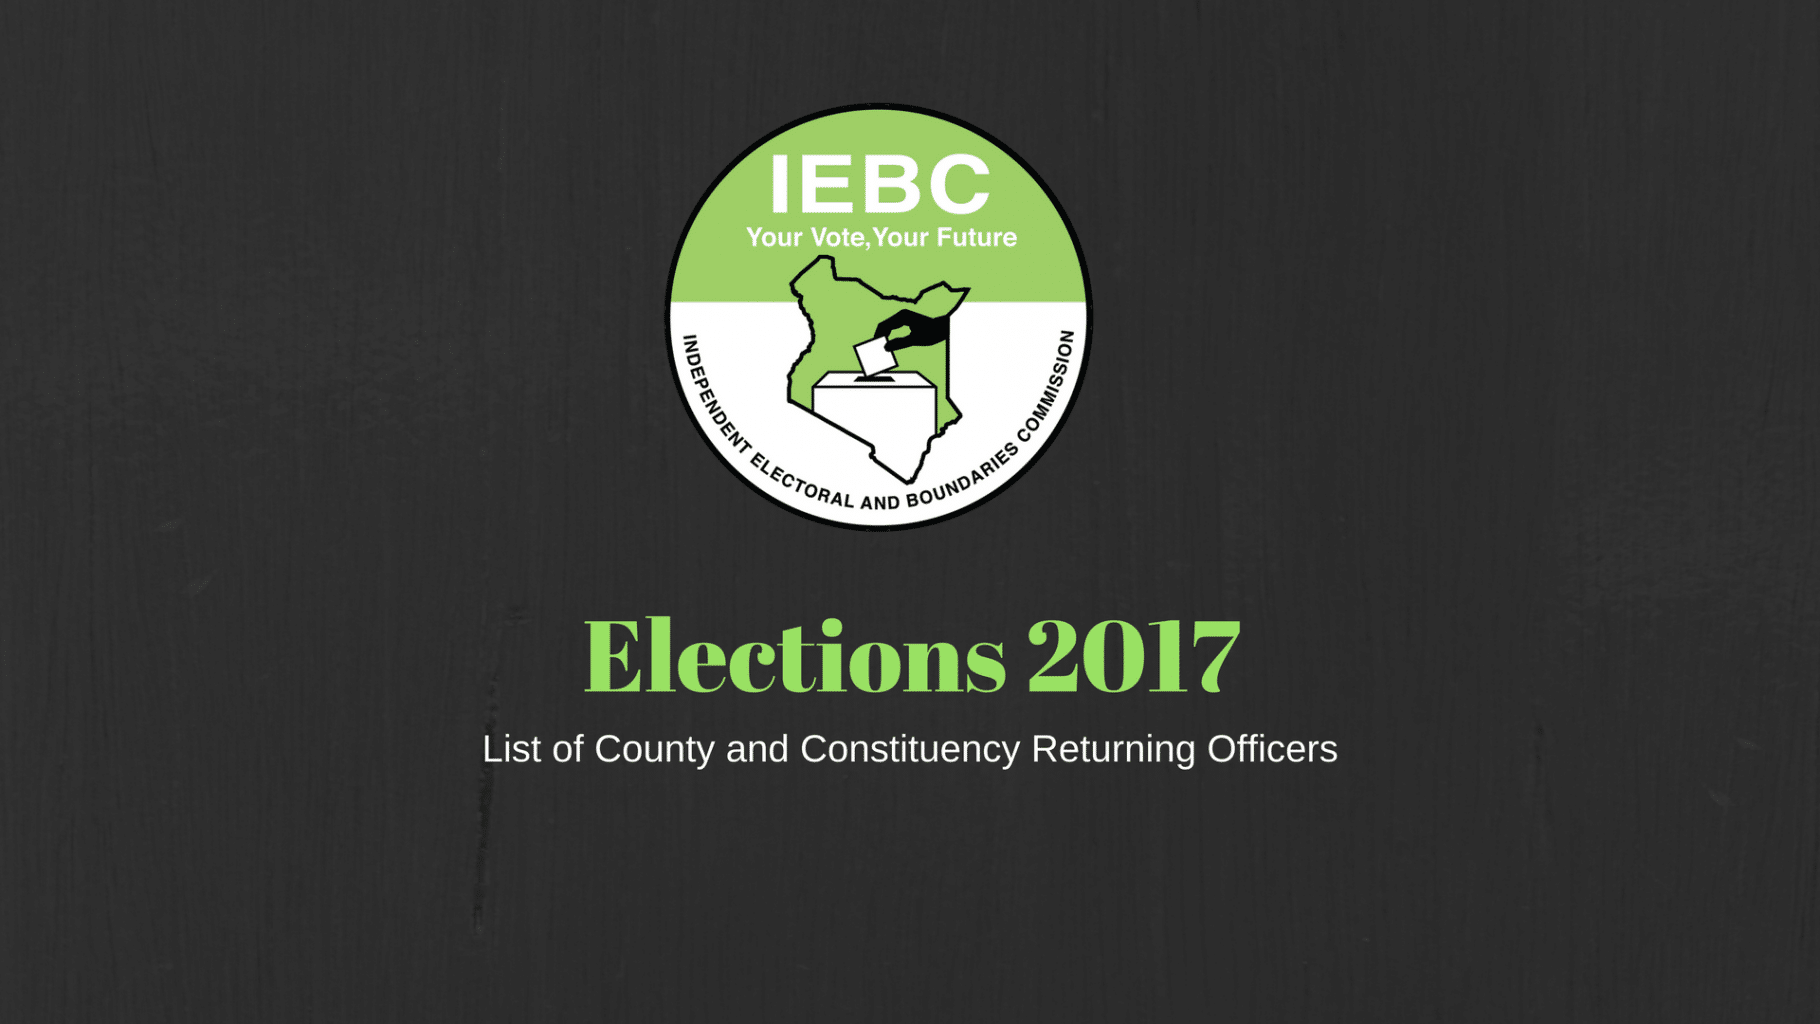 Full List of County and Constituency Returning Officers